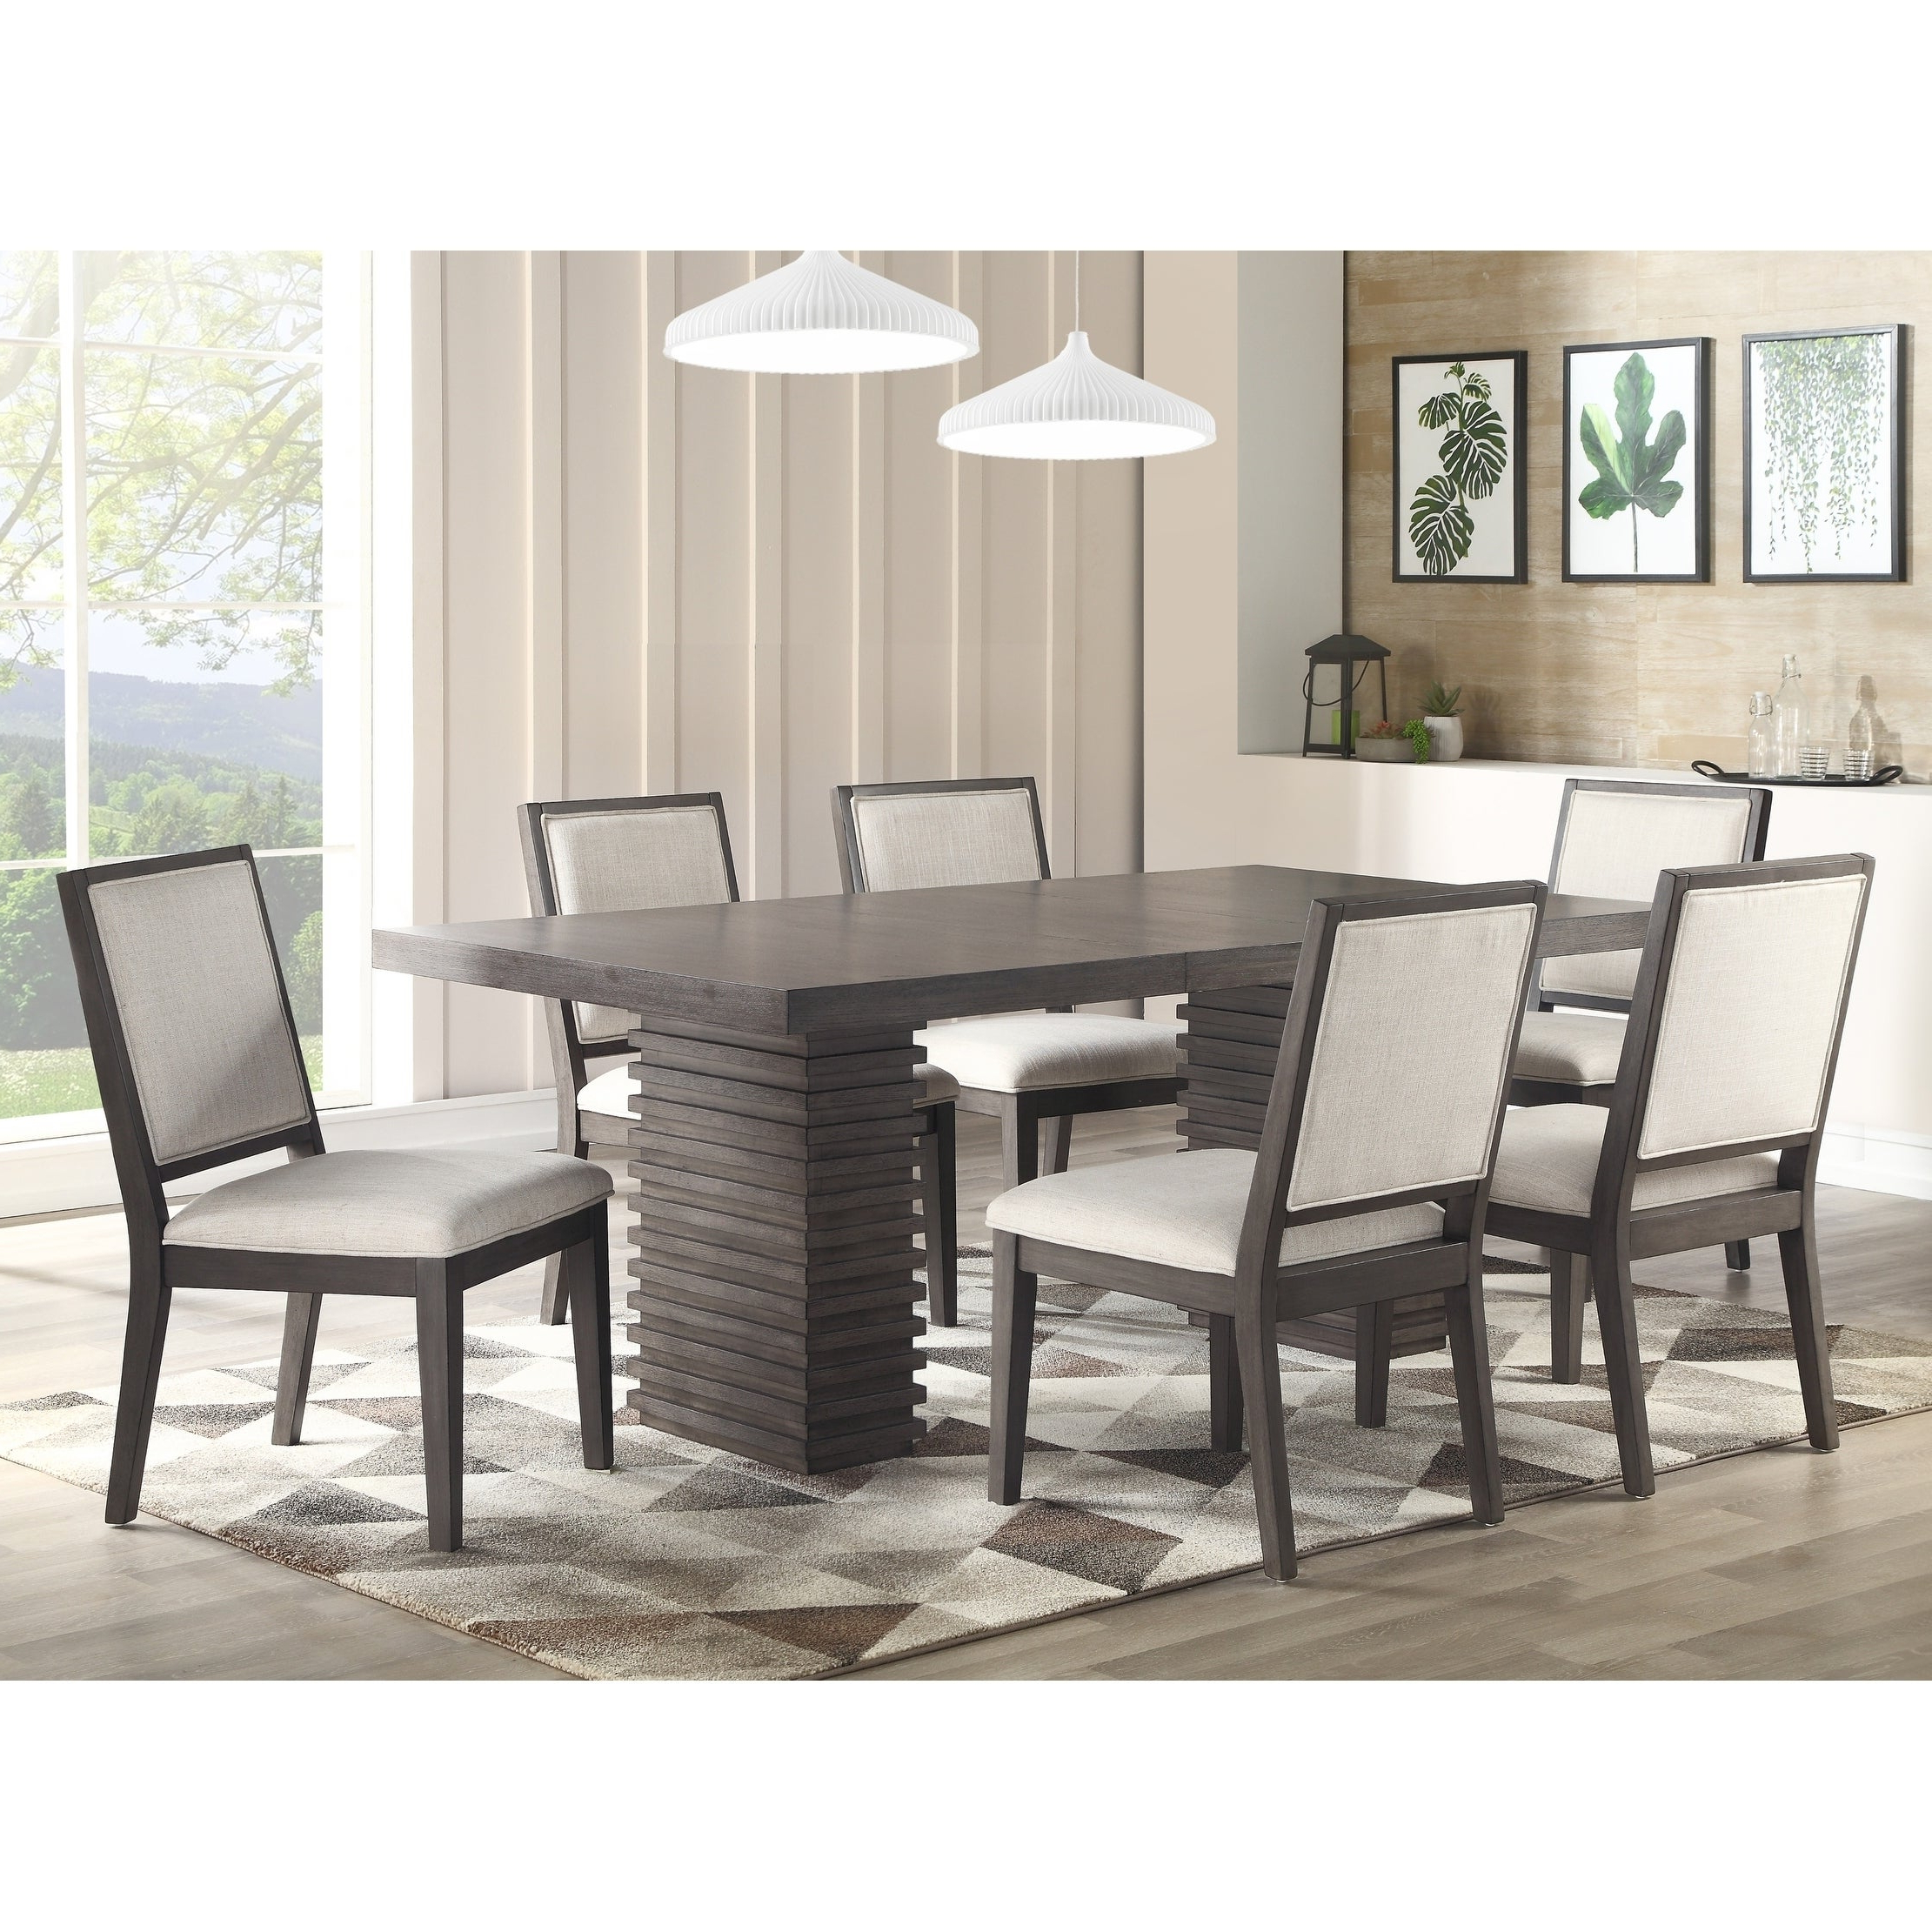 Osterman 6 Piece Extendable Dining Sets (Set Of 6) Throughout Preferred Buy 6 Piece Sets Kitchen & Dining Room Sets Online At Overstock (View 16 of 25)